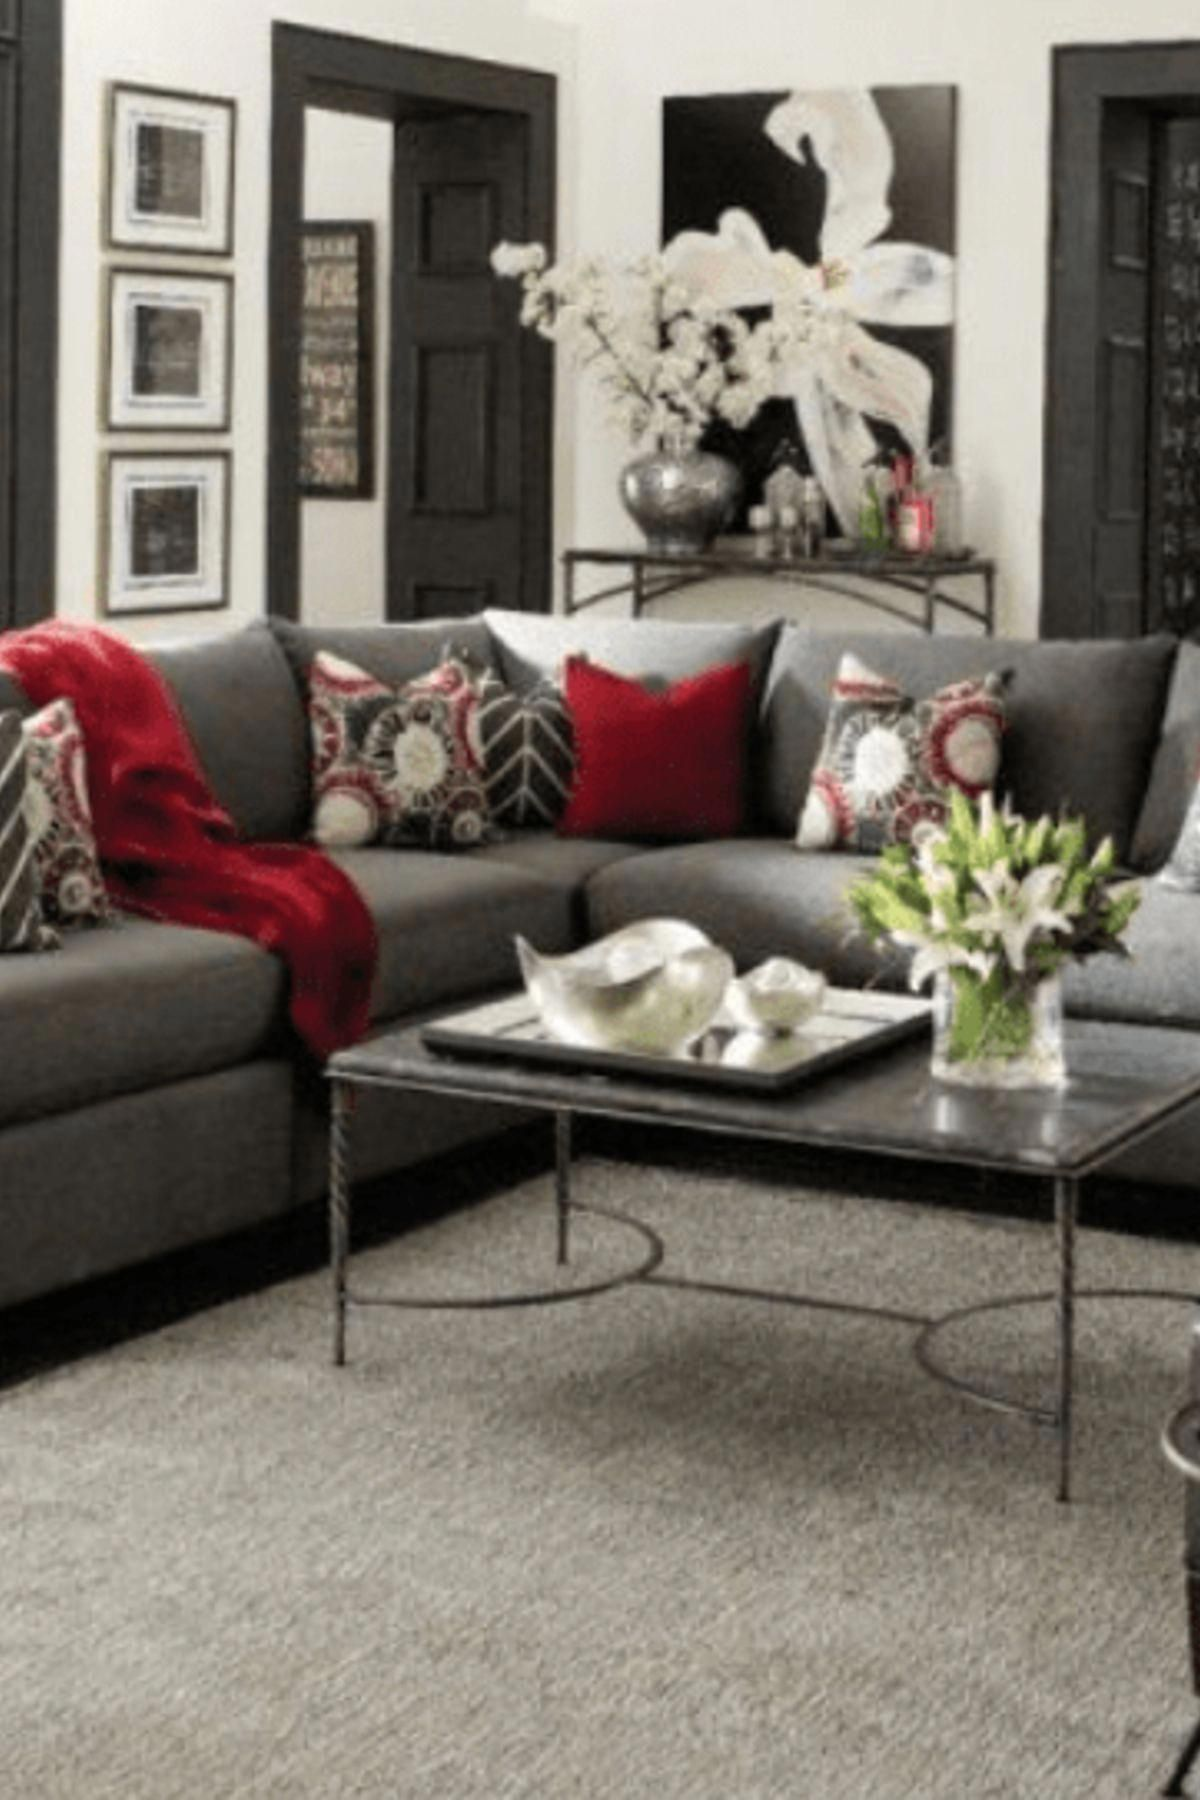 Home decor gray living room with red accent pillows light gray walls with dark